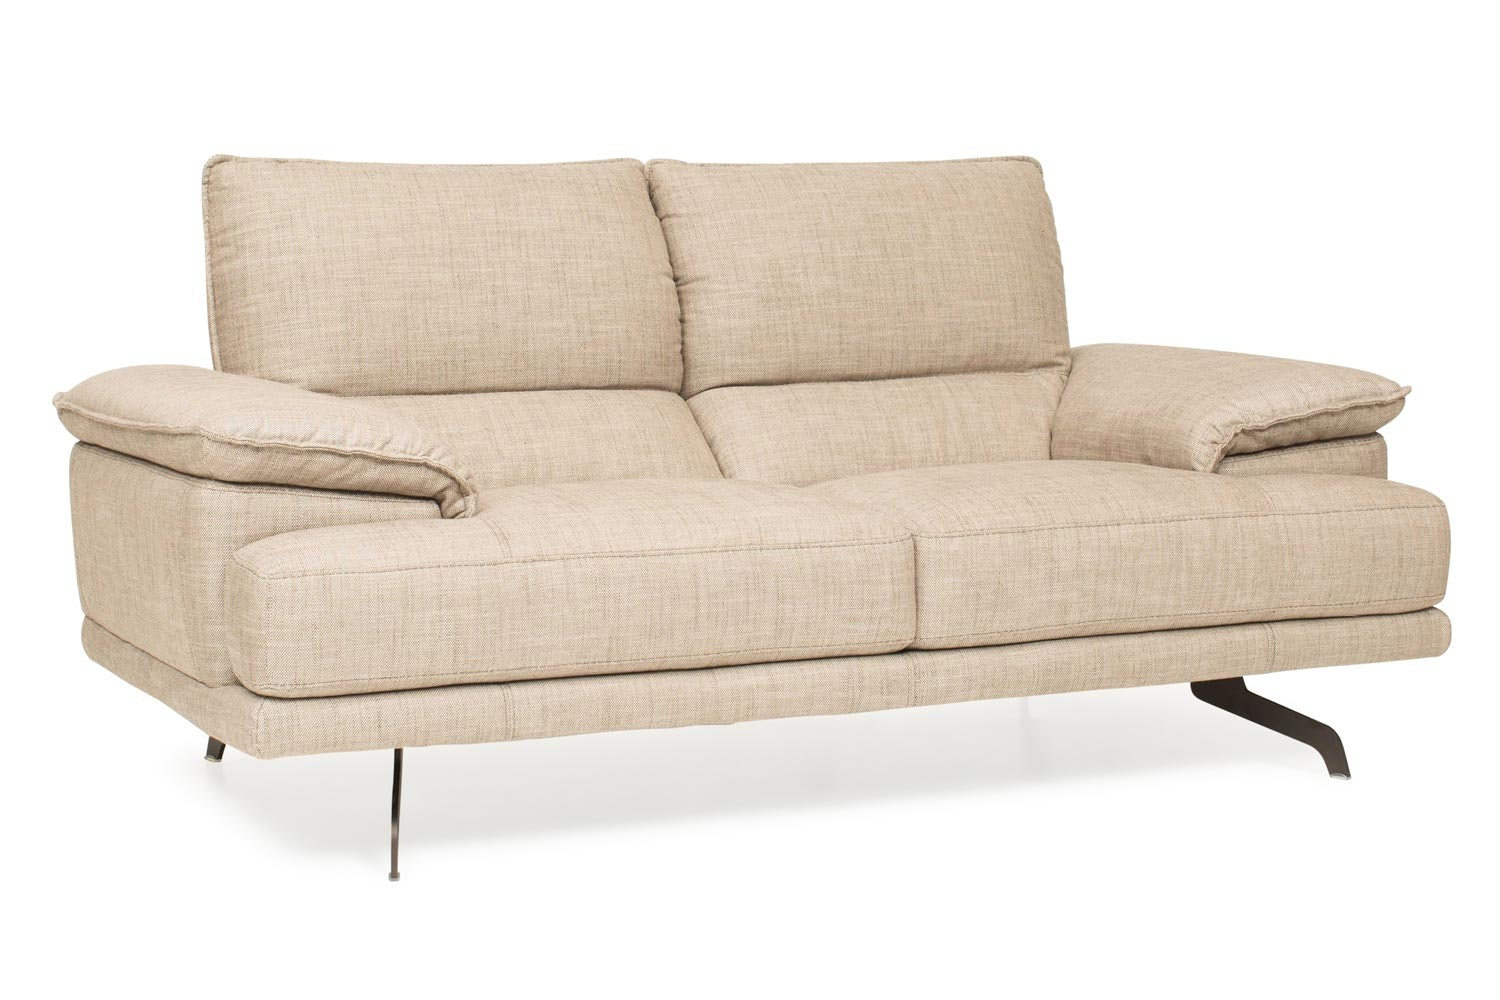 Kris 2 Seater Sofa